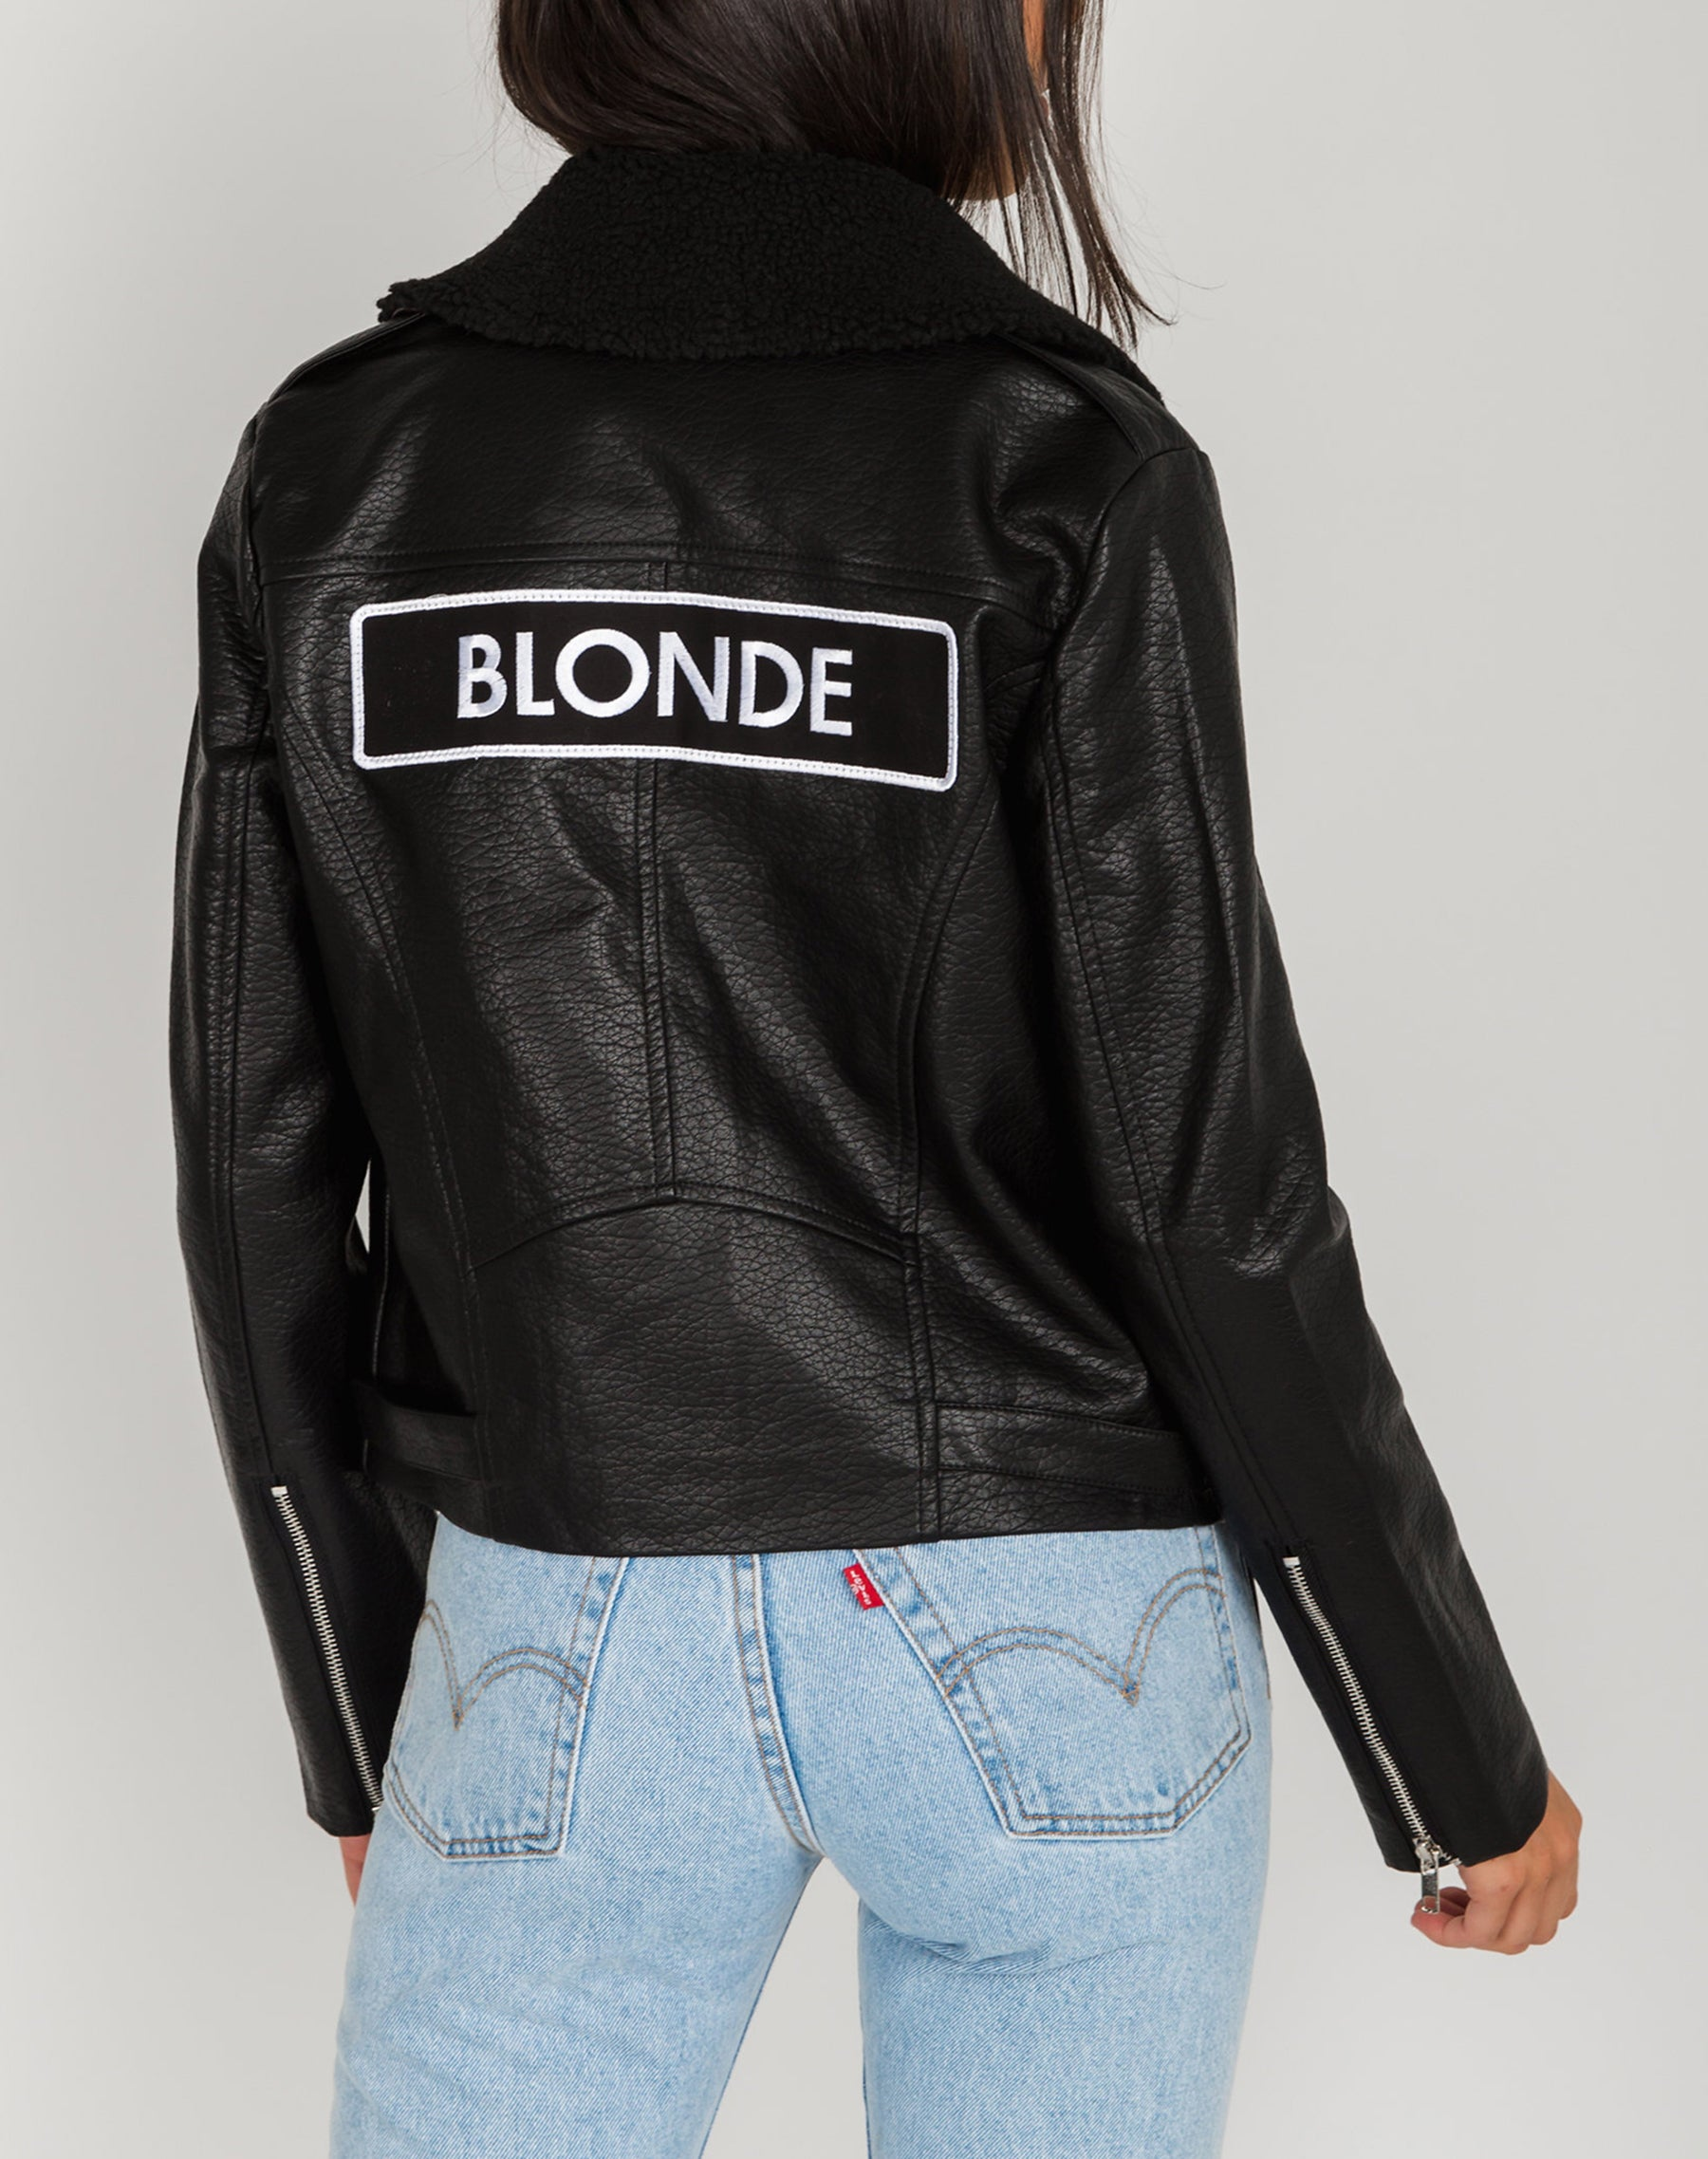 Photo of the Blonde Florence vegan leather moto jacket in black by Brunette the Label.